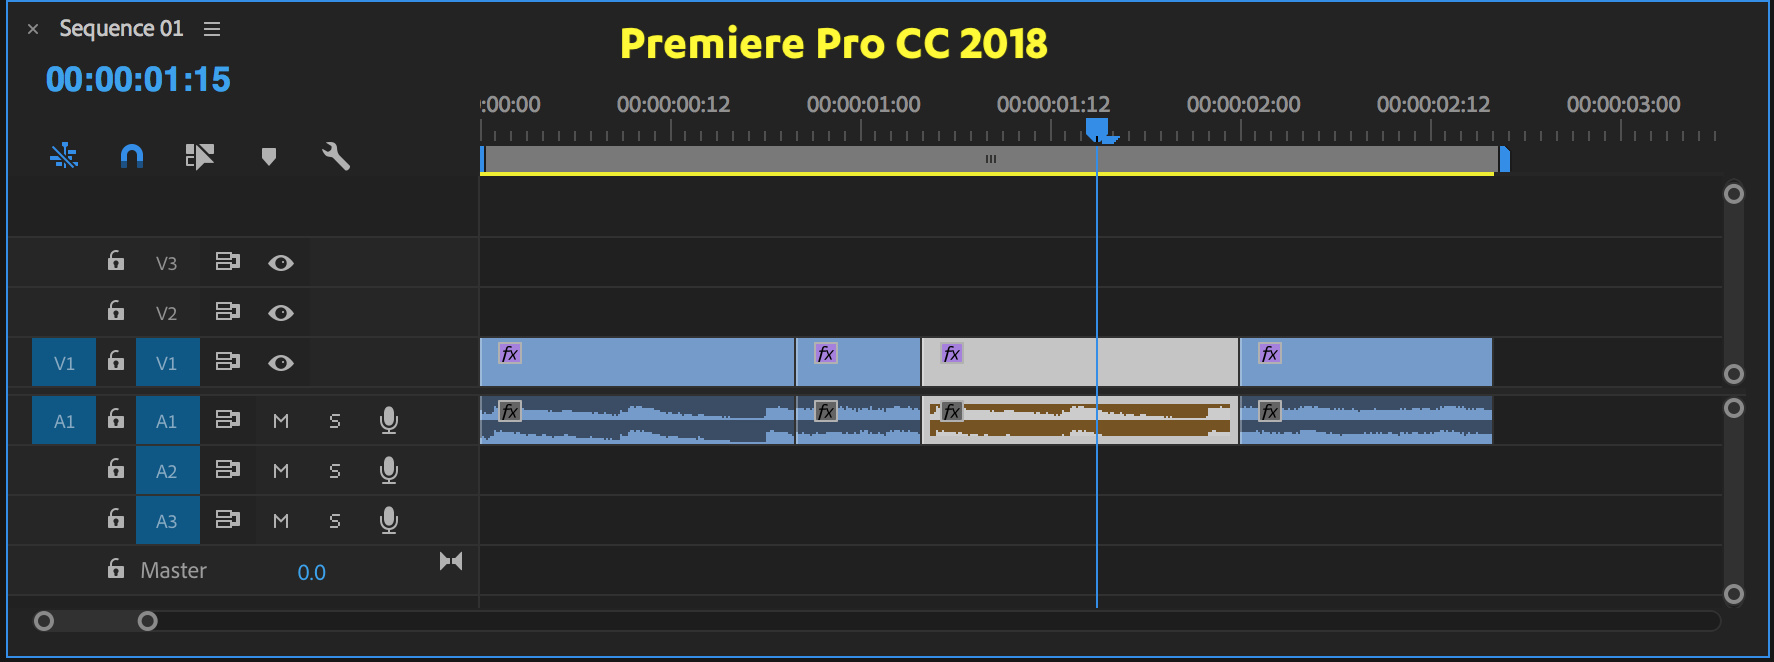 label-color-premiere-pro-cc-2018.png